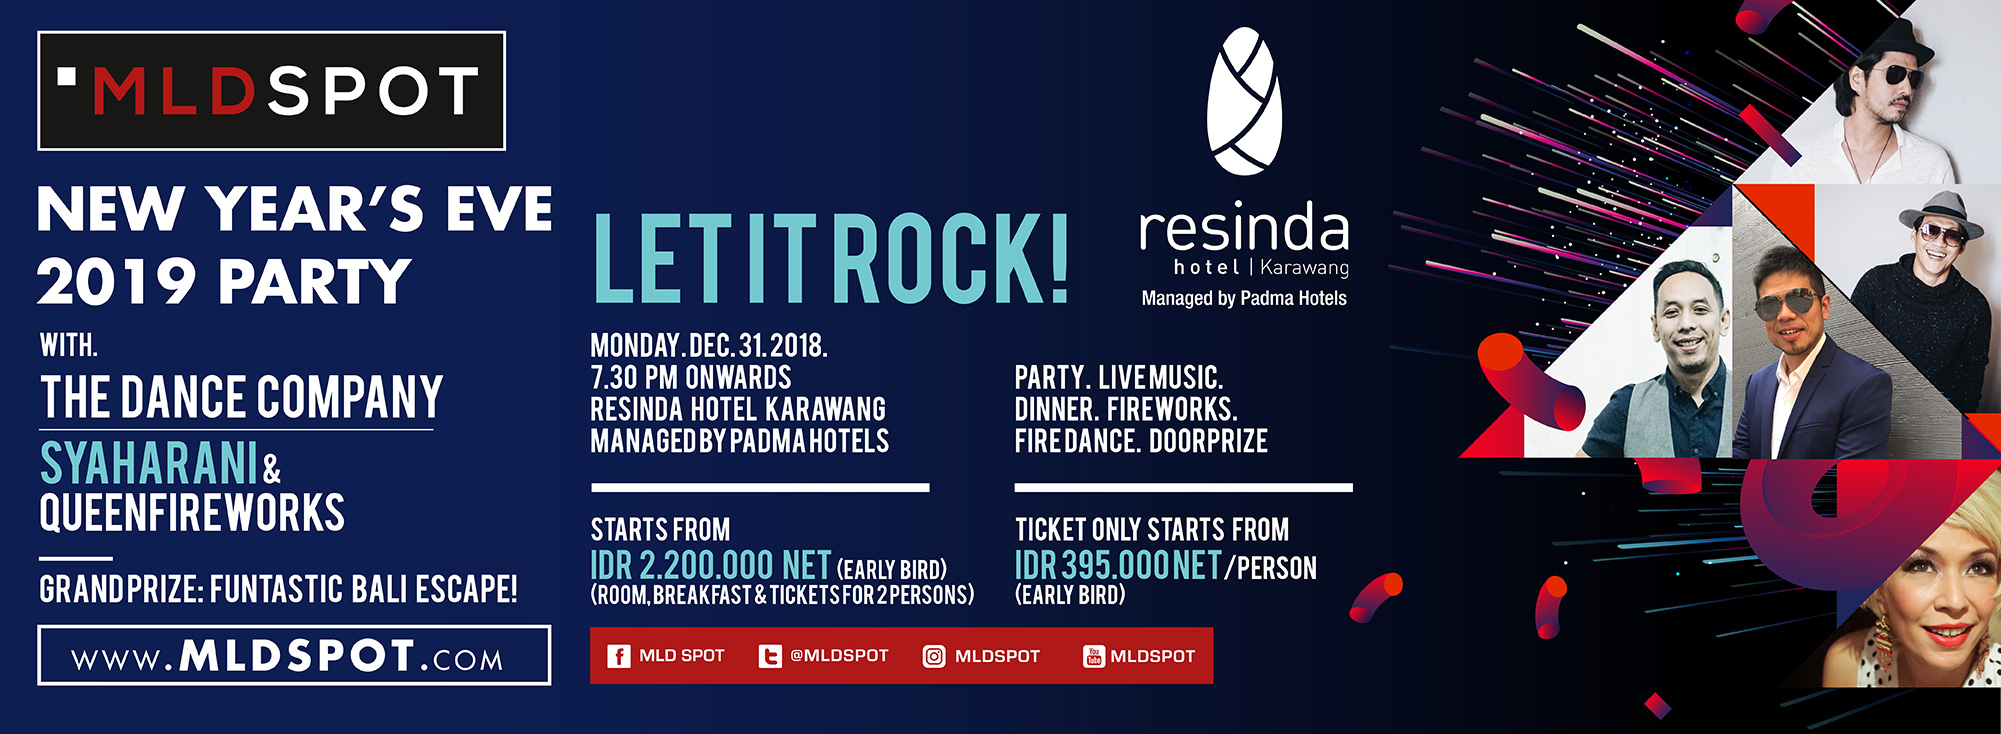 NEW YEAR'S EVE 2019 PARTY | LET IT ROCK!